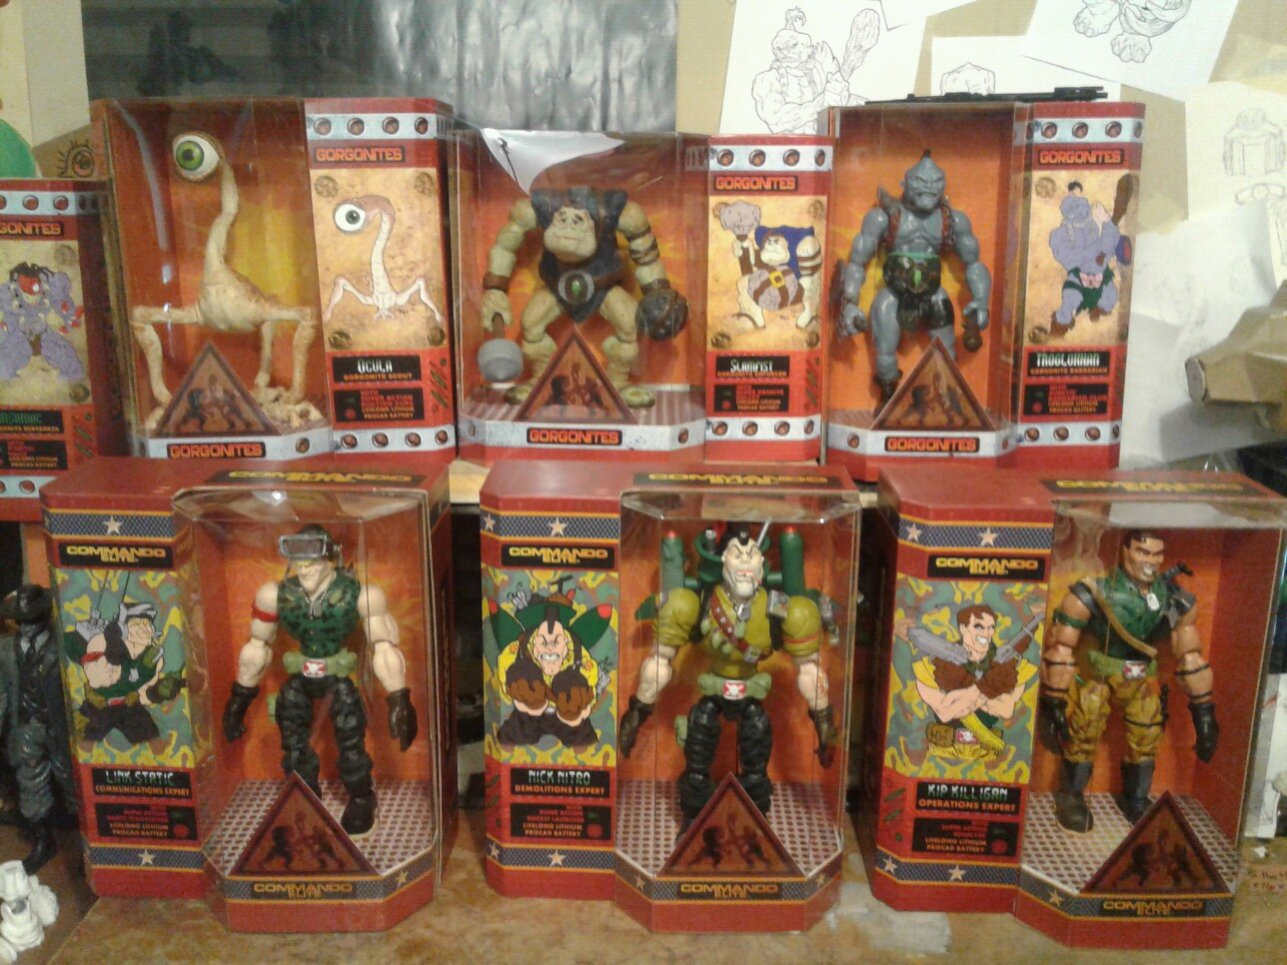 3 gorgonites 3 commandos from small soldiers by jok3r0314 ...